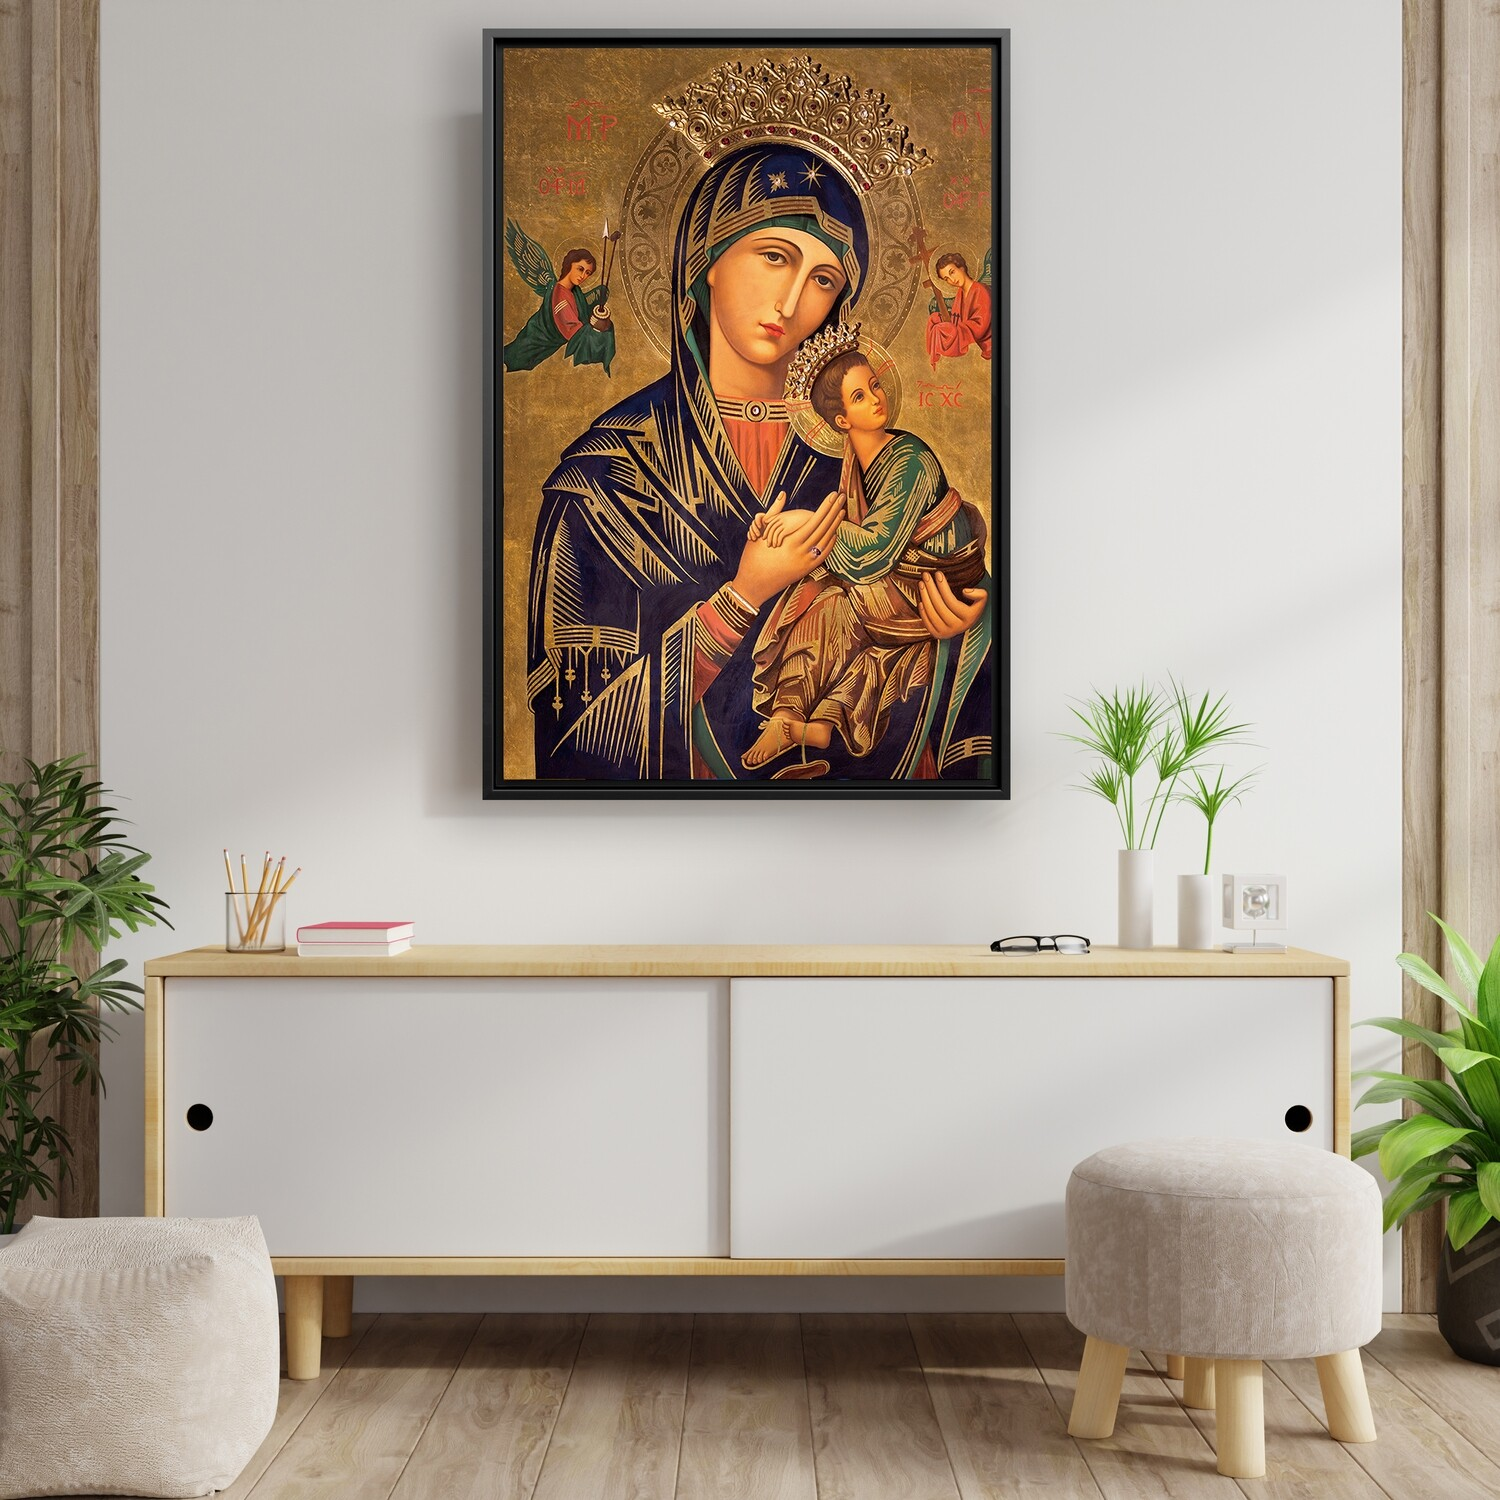 Mother Mary and Baby Jesus Painting - Framed Christian Wallart - Virgin Mary Picture Printed on Acrylic Glass - Framed and Ready To Hang